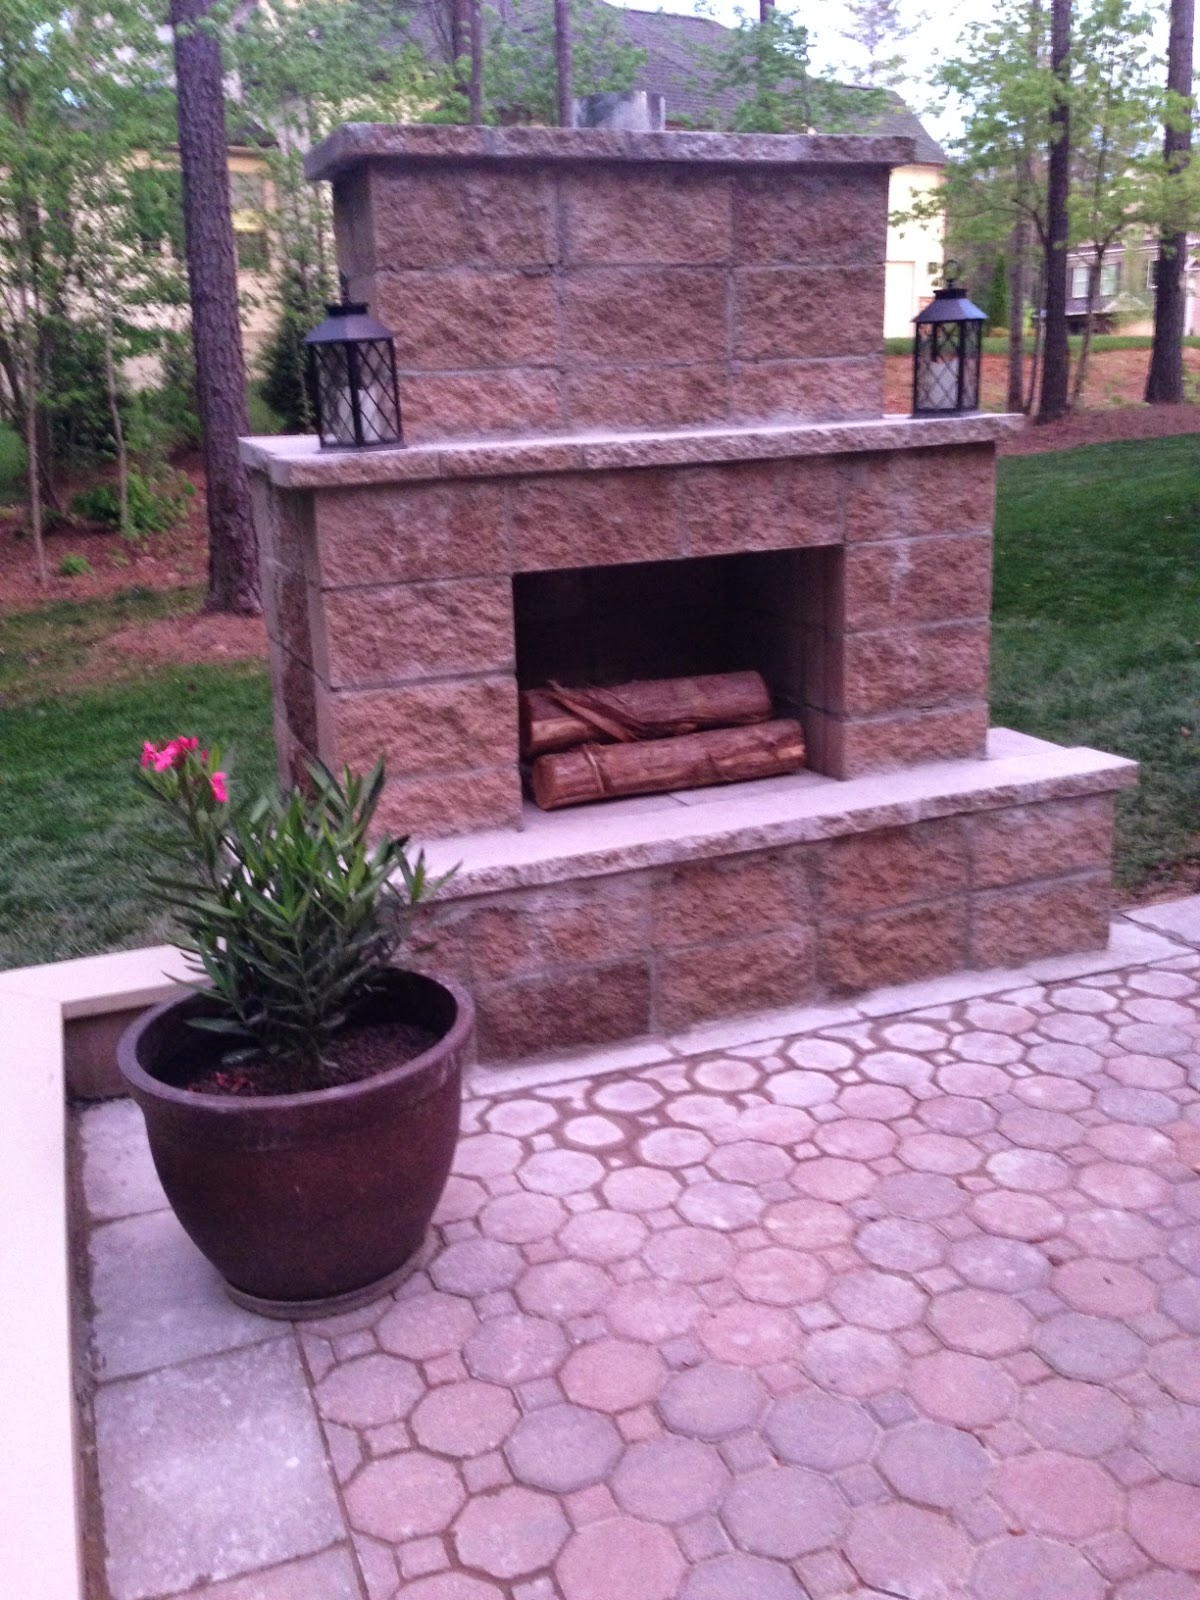 Backyard Fireplace Diy :  the Barbie Dream House DIY Paver Patio and Outdoor Fireplace Reveal